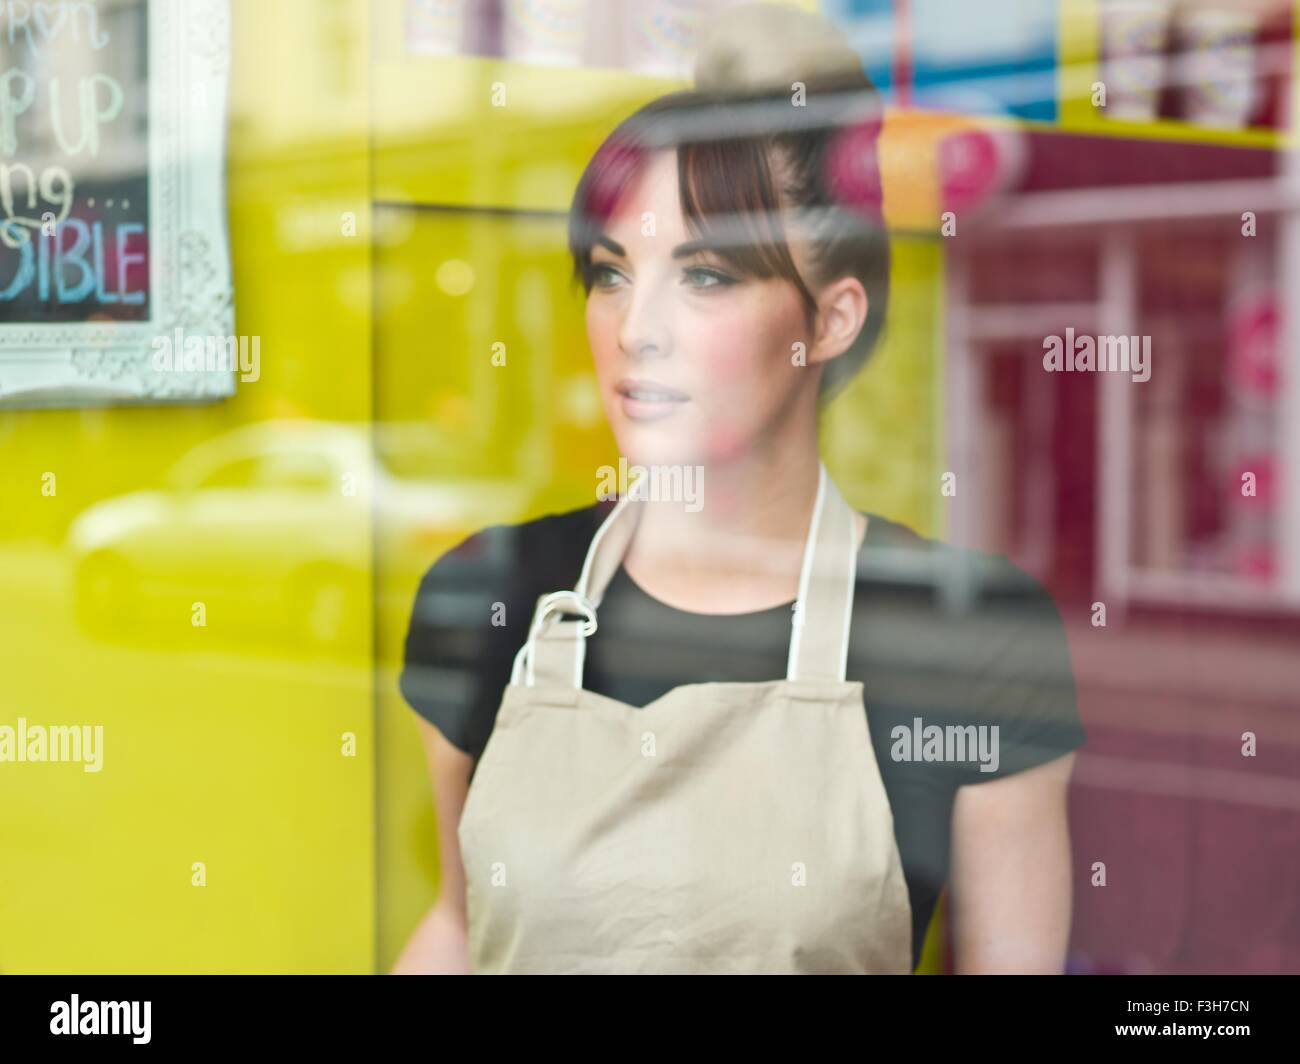 Portrait of young woman working in cake shop, taken through shop window - Stock Image